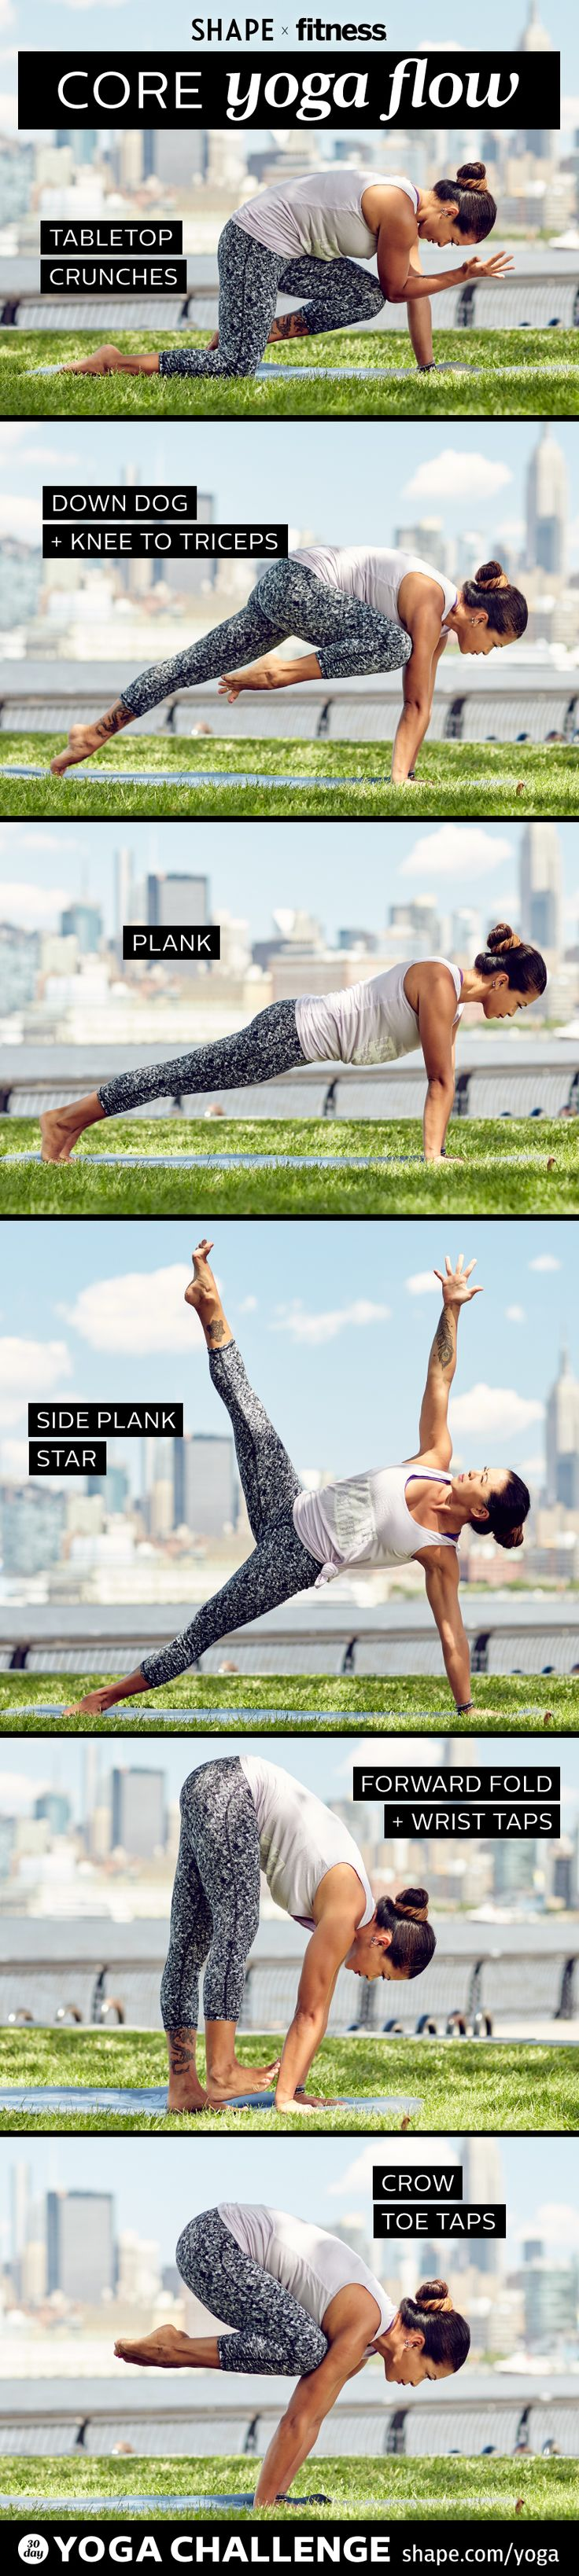 Week 2 of our Yoga Challenge with SHAPE Magazine and Two Fit Moms. Strengthen your core with these graceful poses.